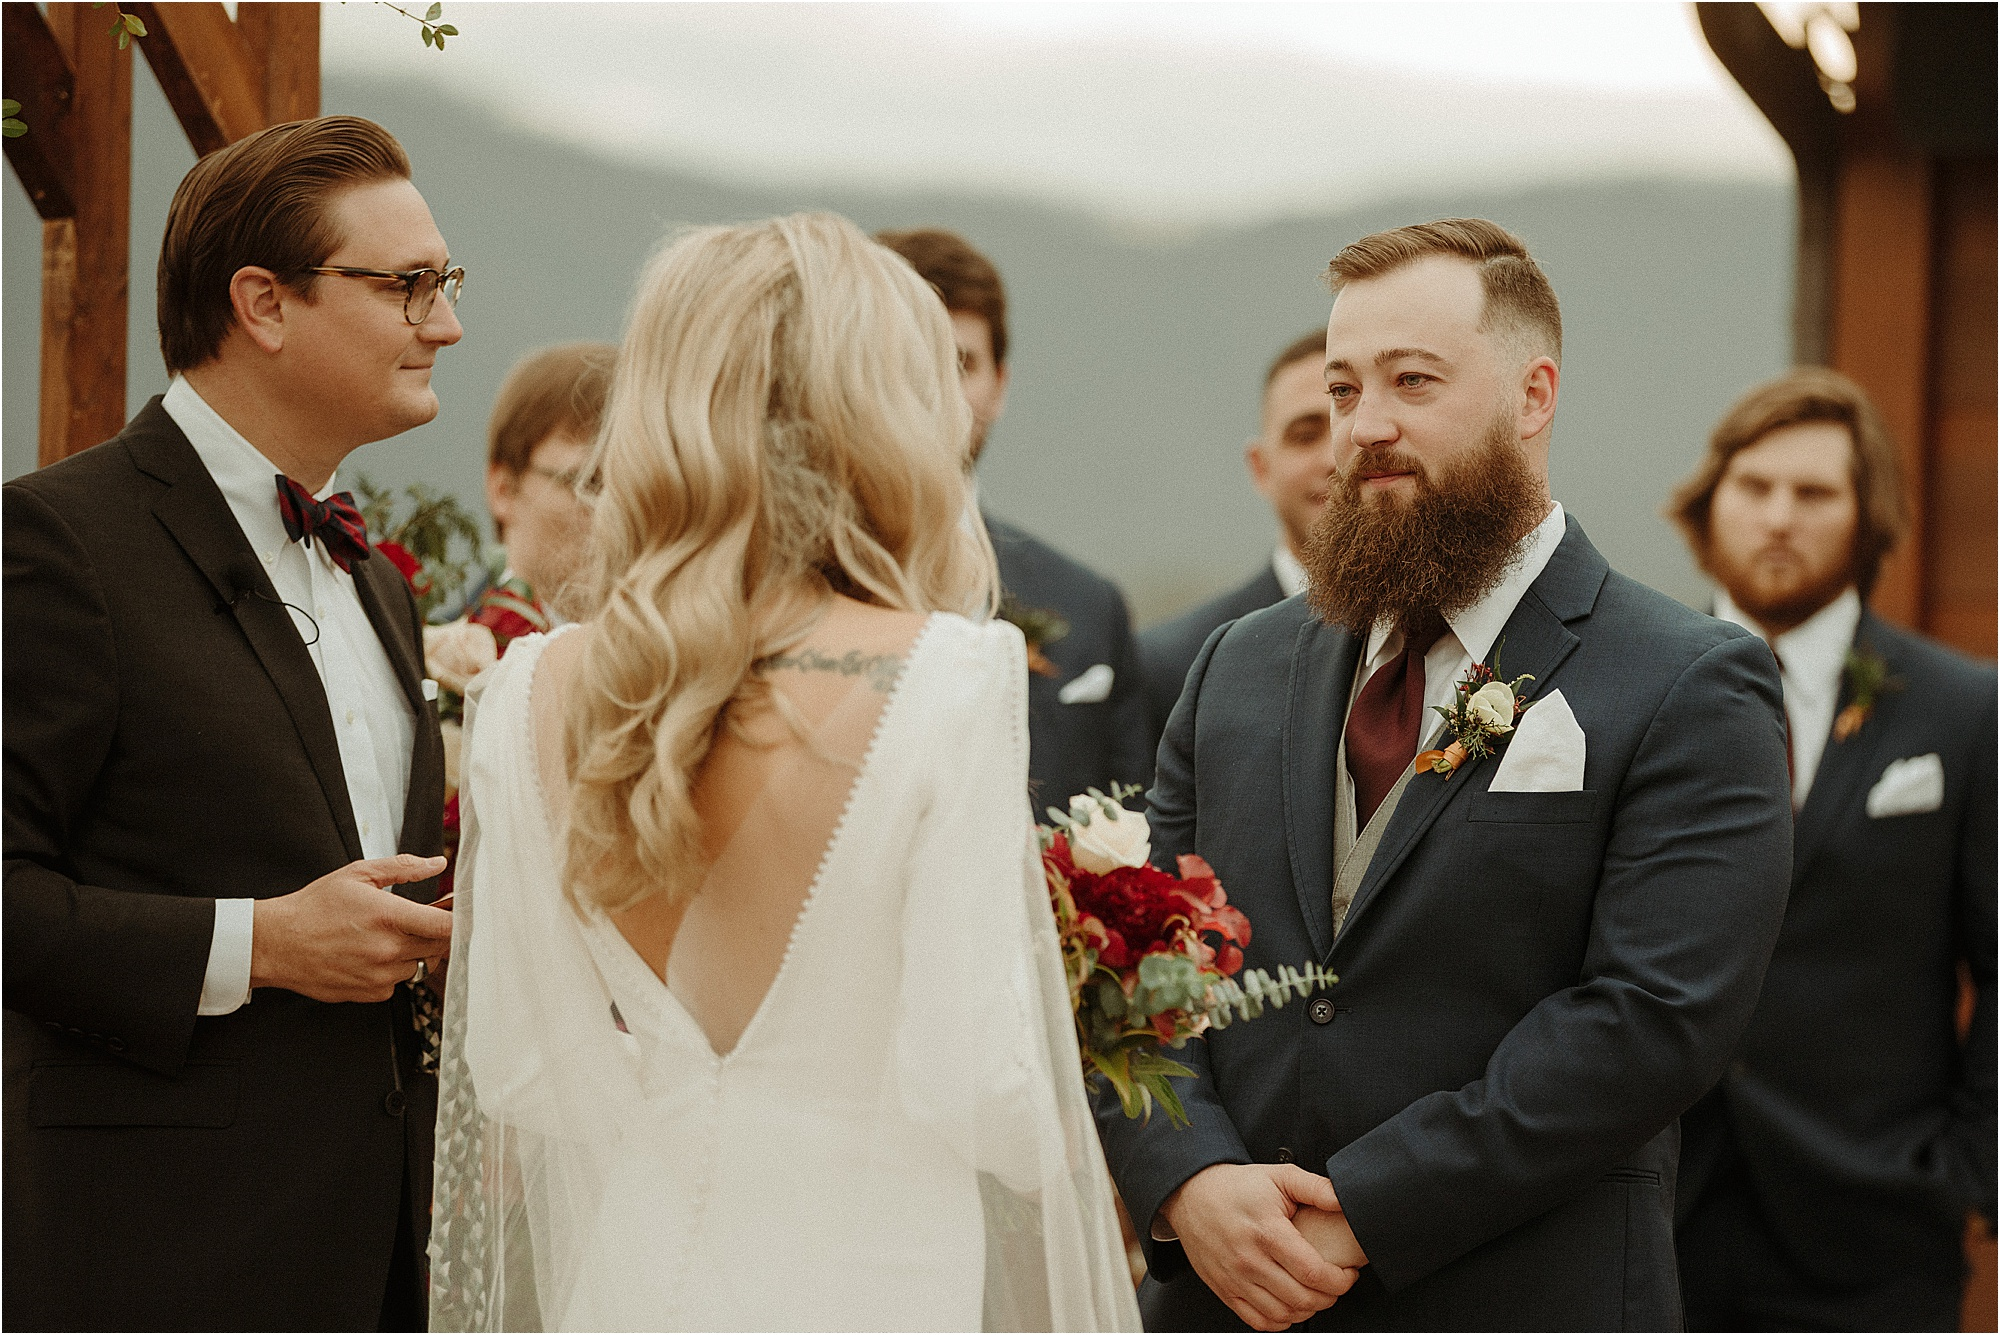 bride reads vows to groom at wedding ceremony